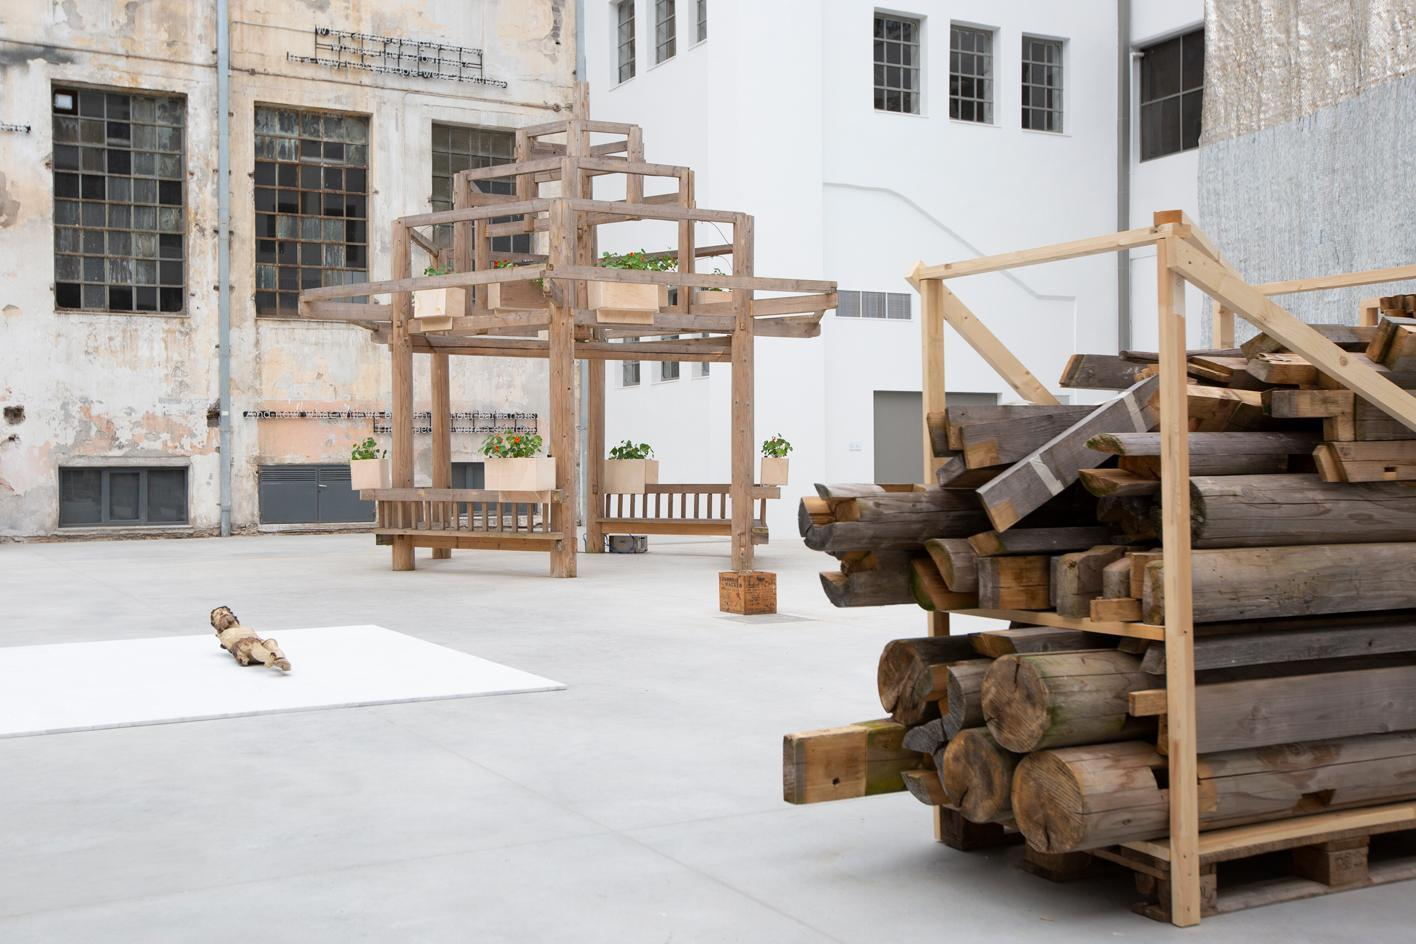 Danh Võ, Untitled, 2021 (detail), mixed media. Courtesy the artist. Commissioned by NEON, part of the fascinating history of Europe's art galleries